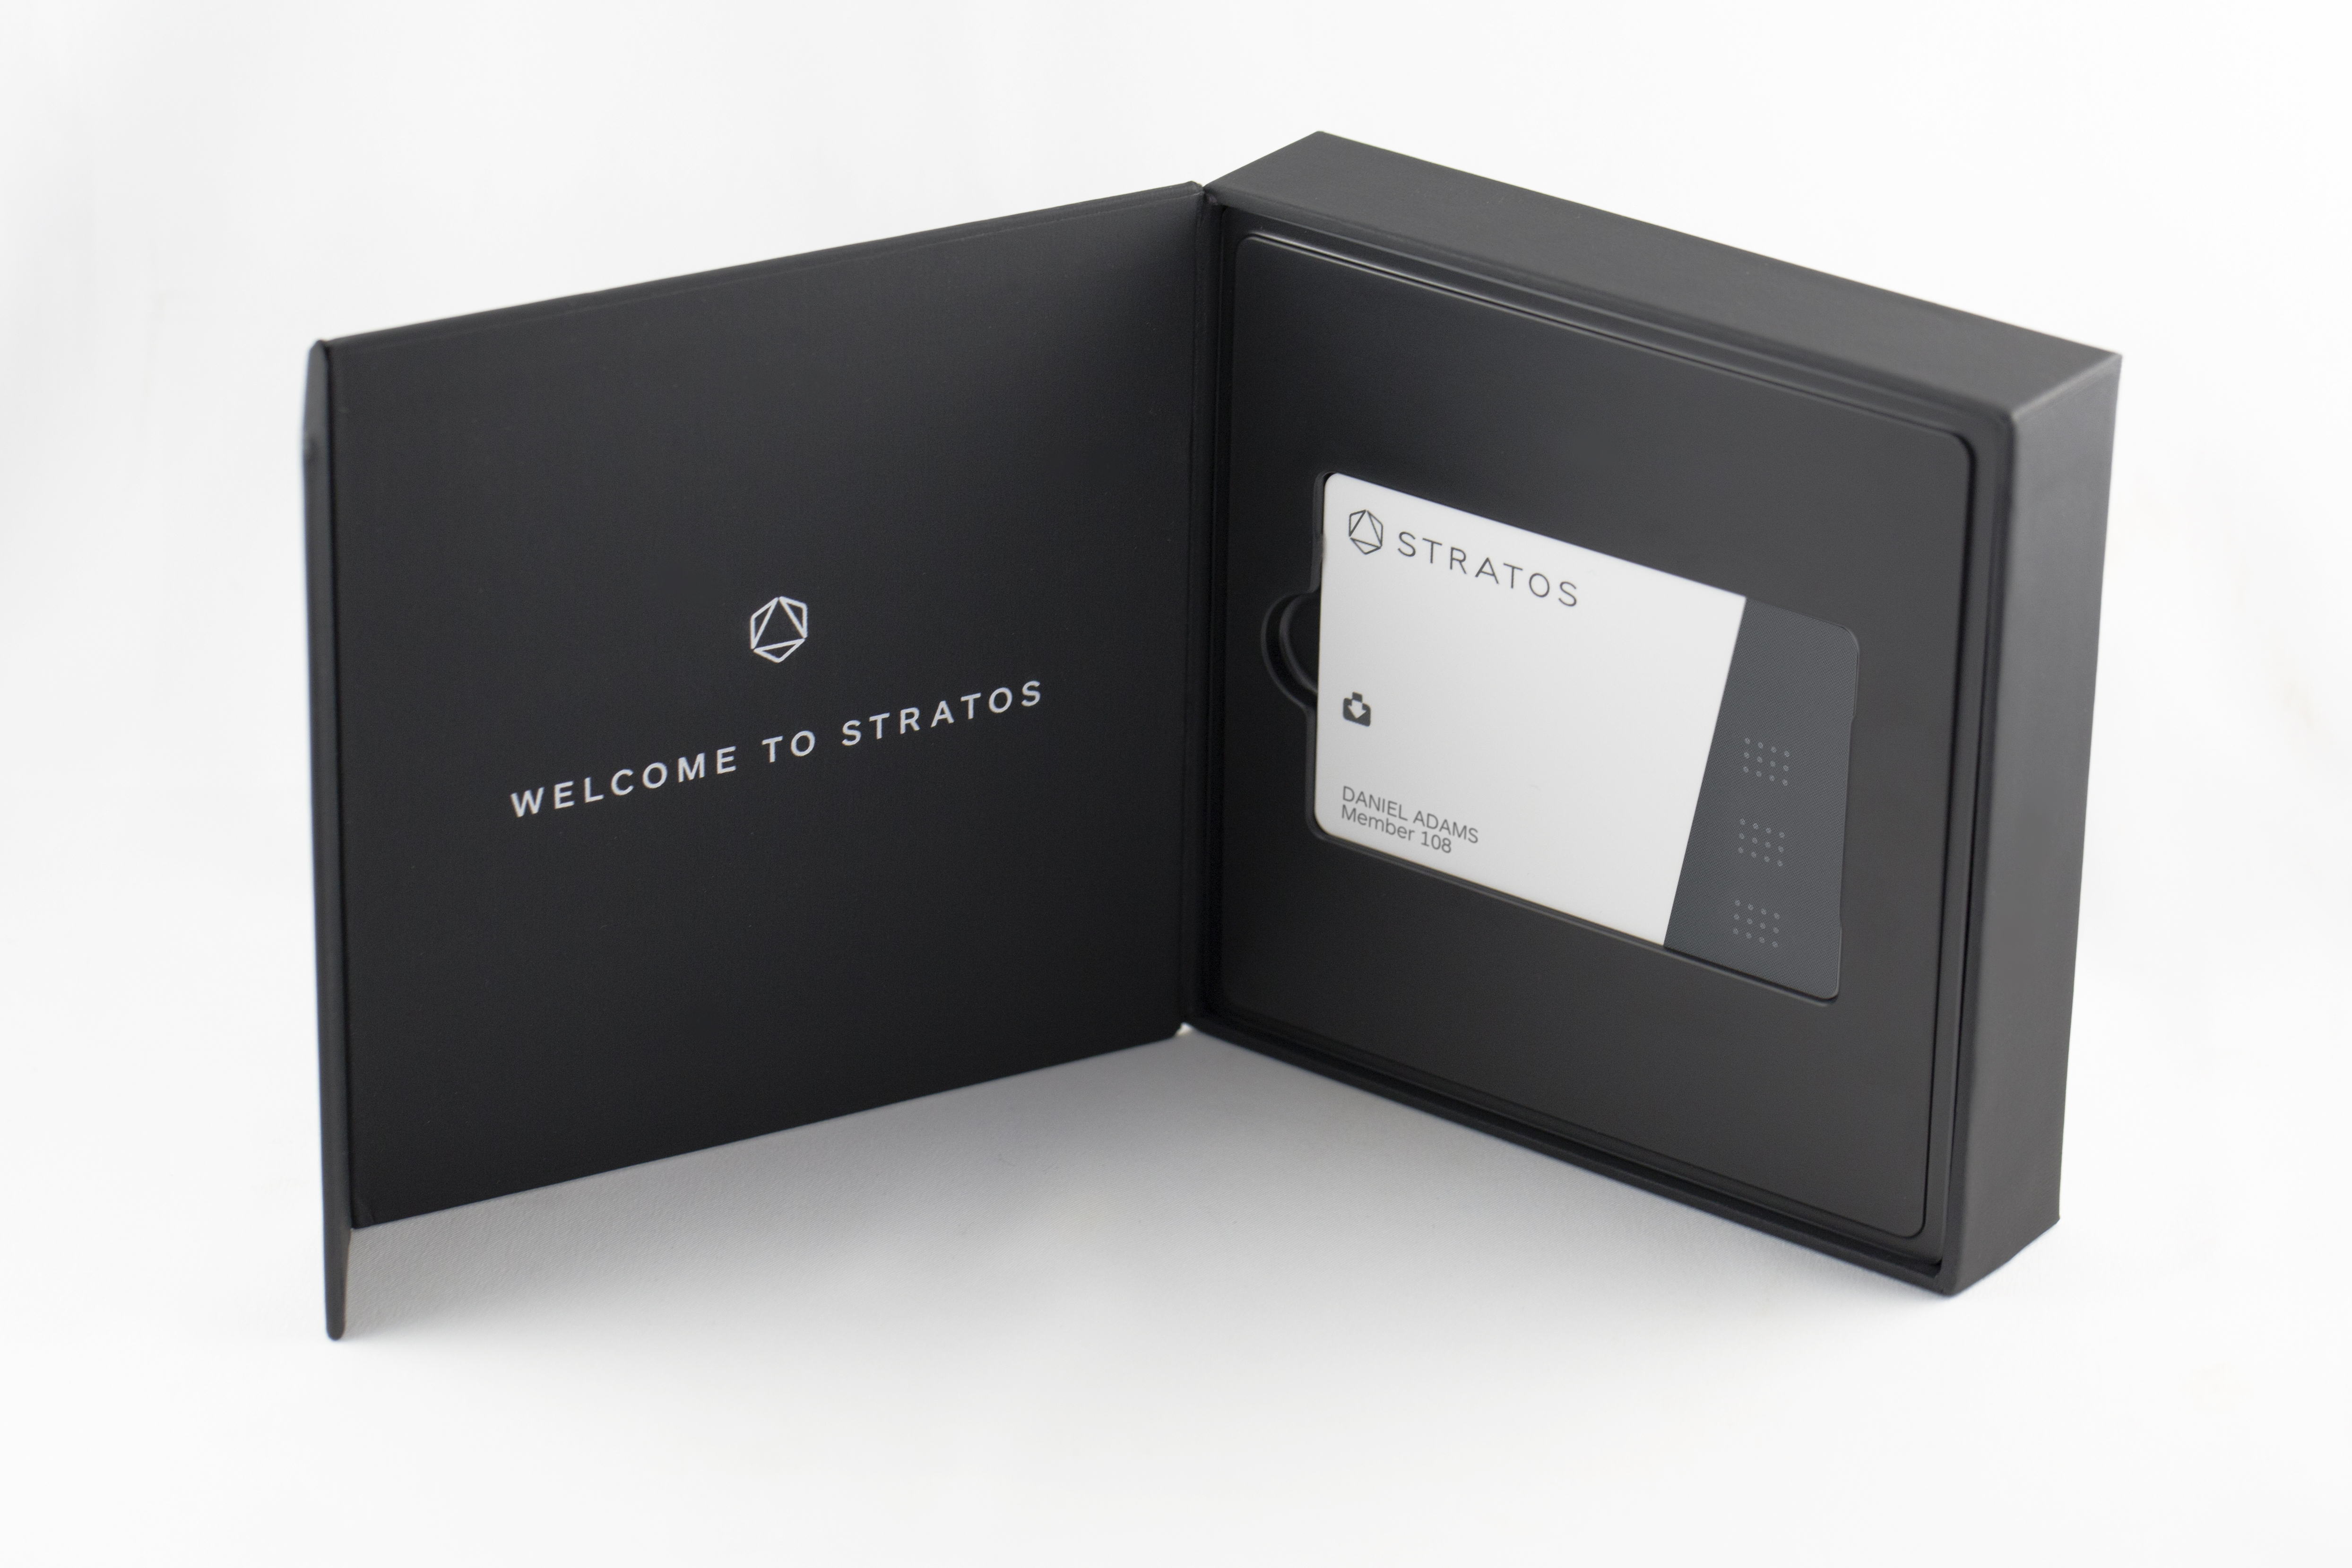 stratos card begins shipping in april